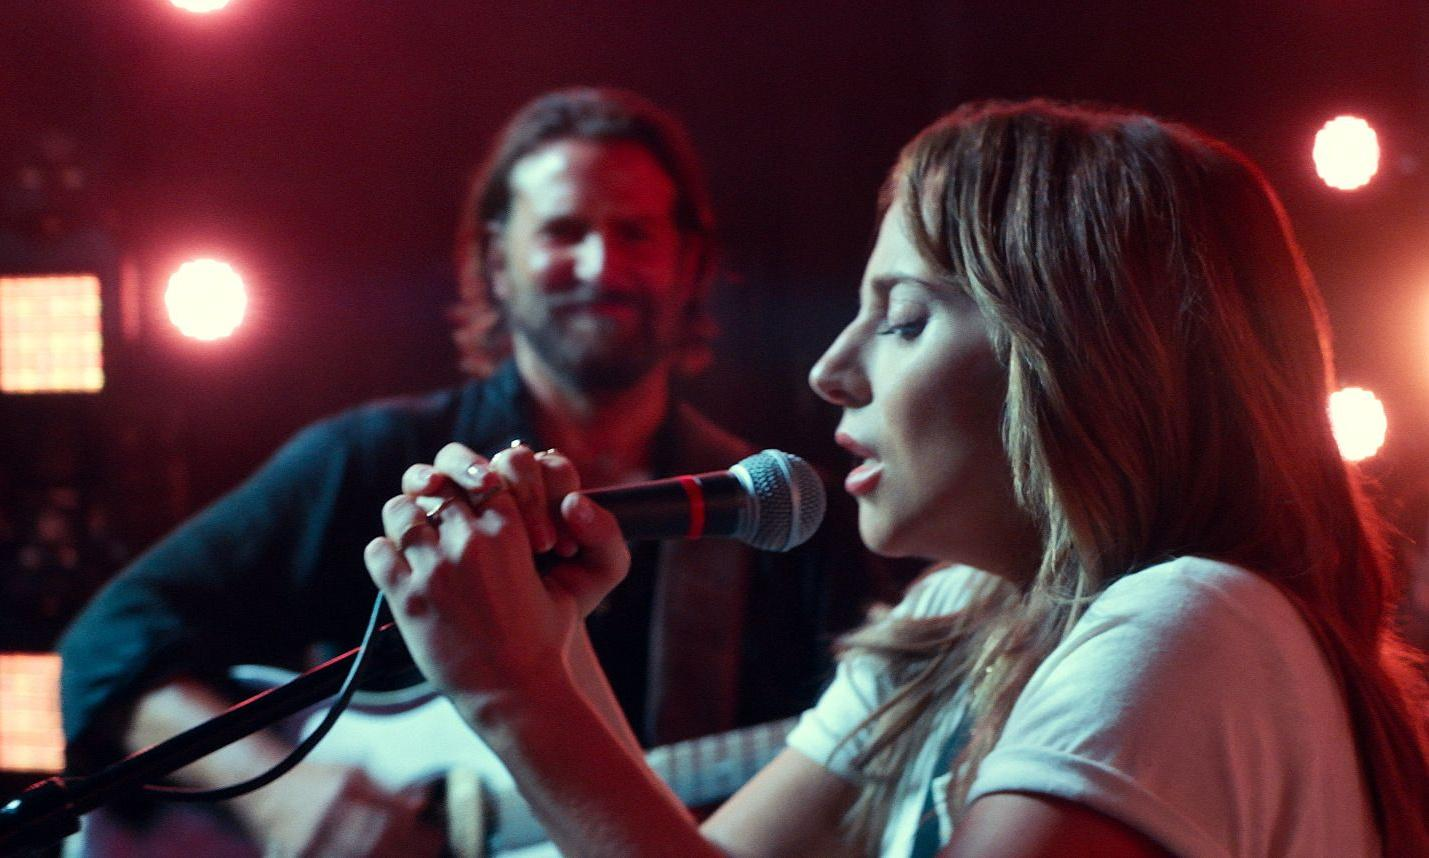 A Star Is Born isn't sexist or 'rockist' – it's a cutting insight into so-called 'authenticity'